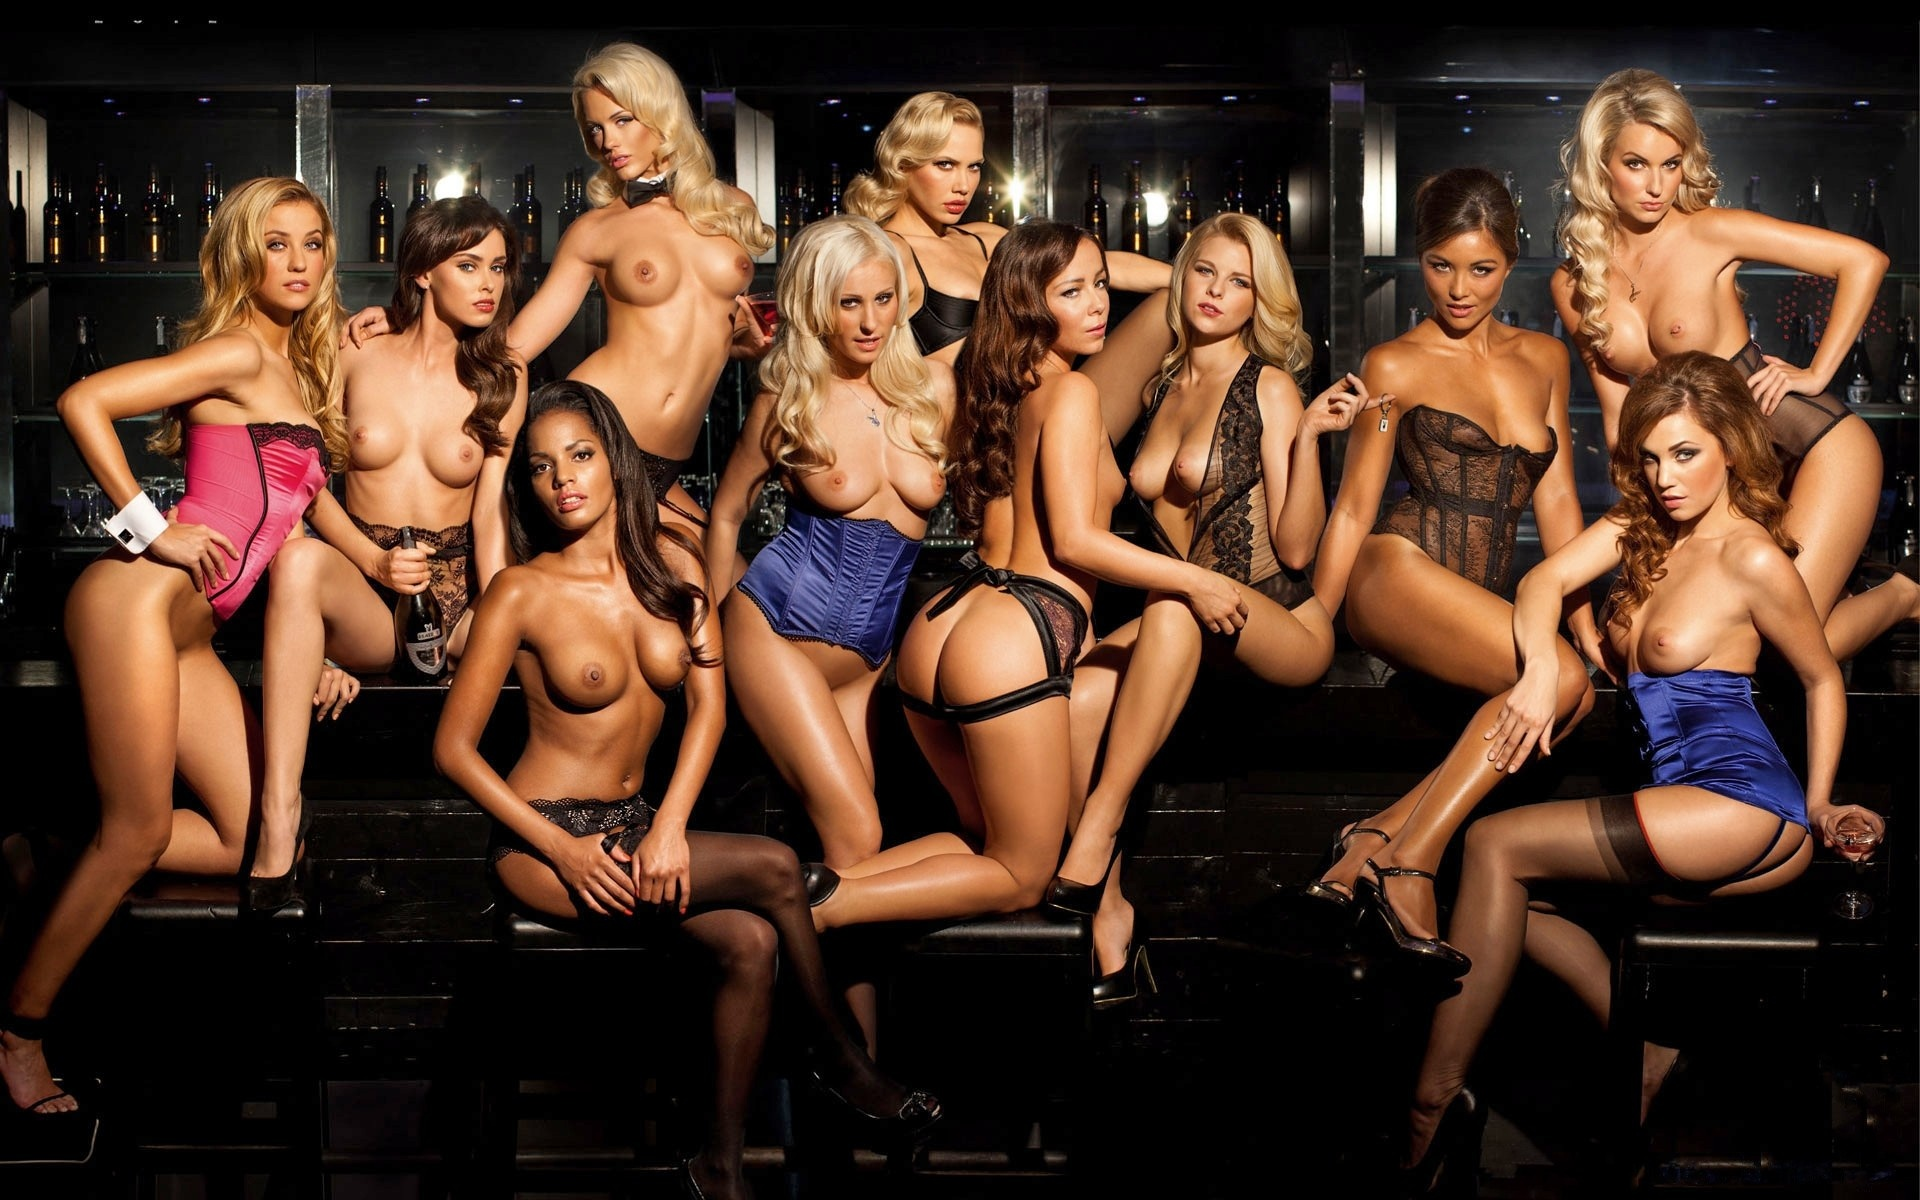 playboy playmates group models photo centerfold hd and wide wallpaper